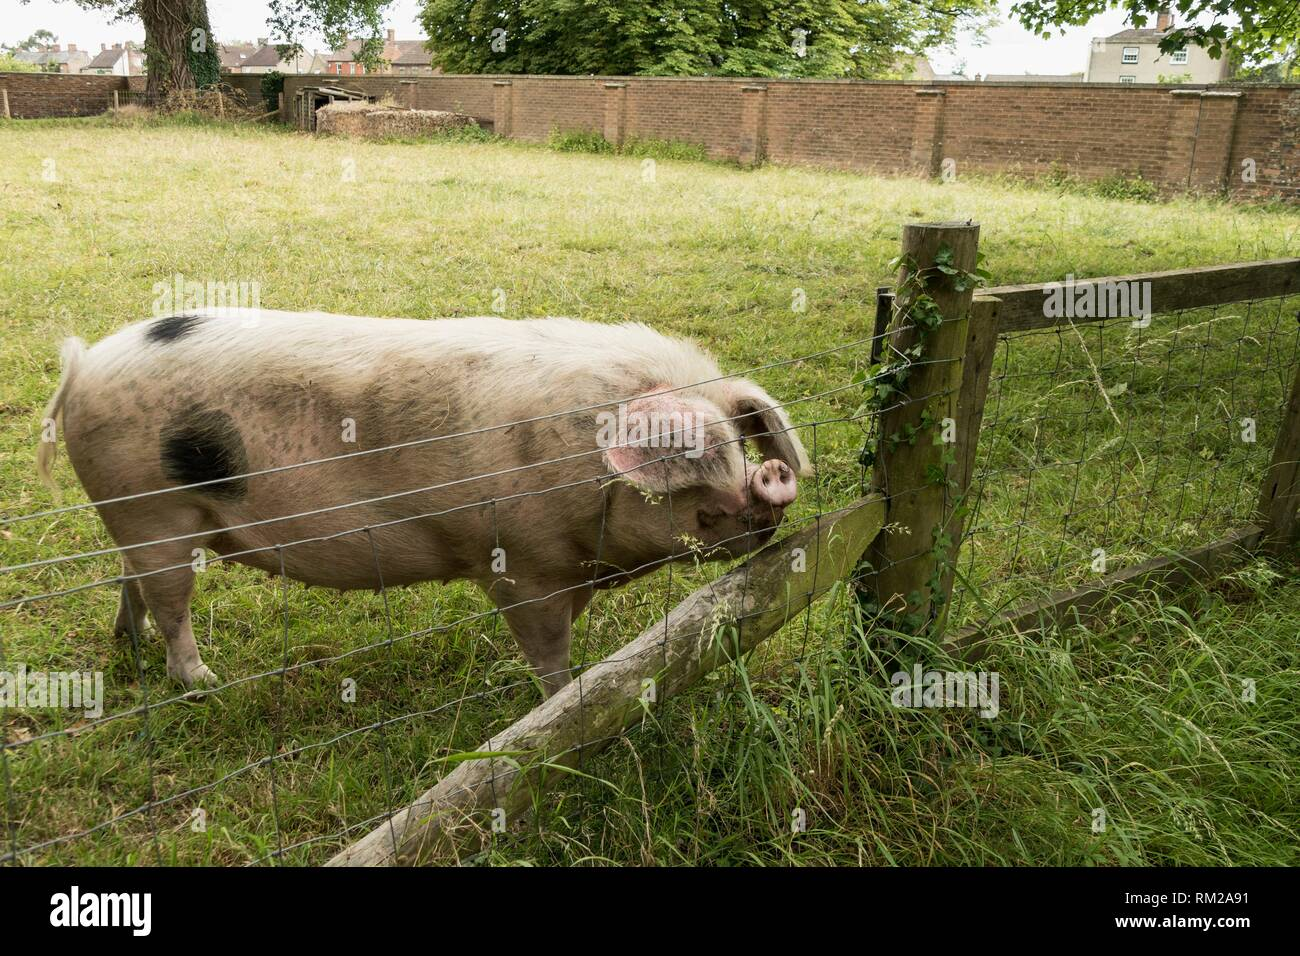 Black spotted sow with floppy ears and upturned snout sniffing the air behind a fence in Gloucestershire, England. - Stock Image